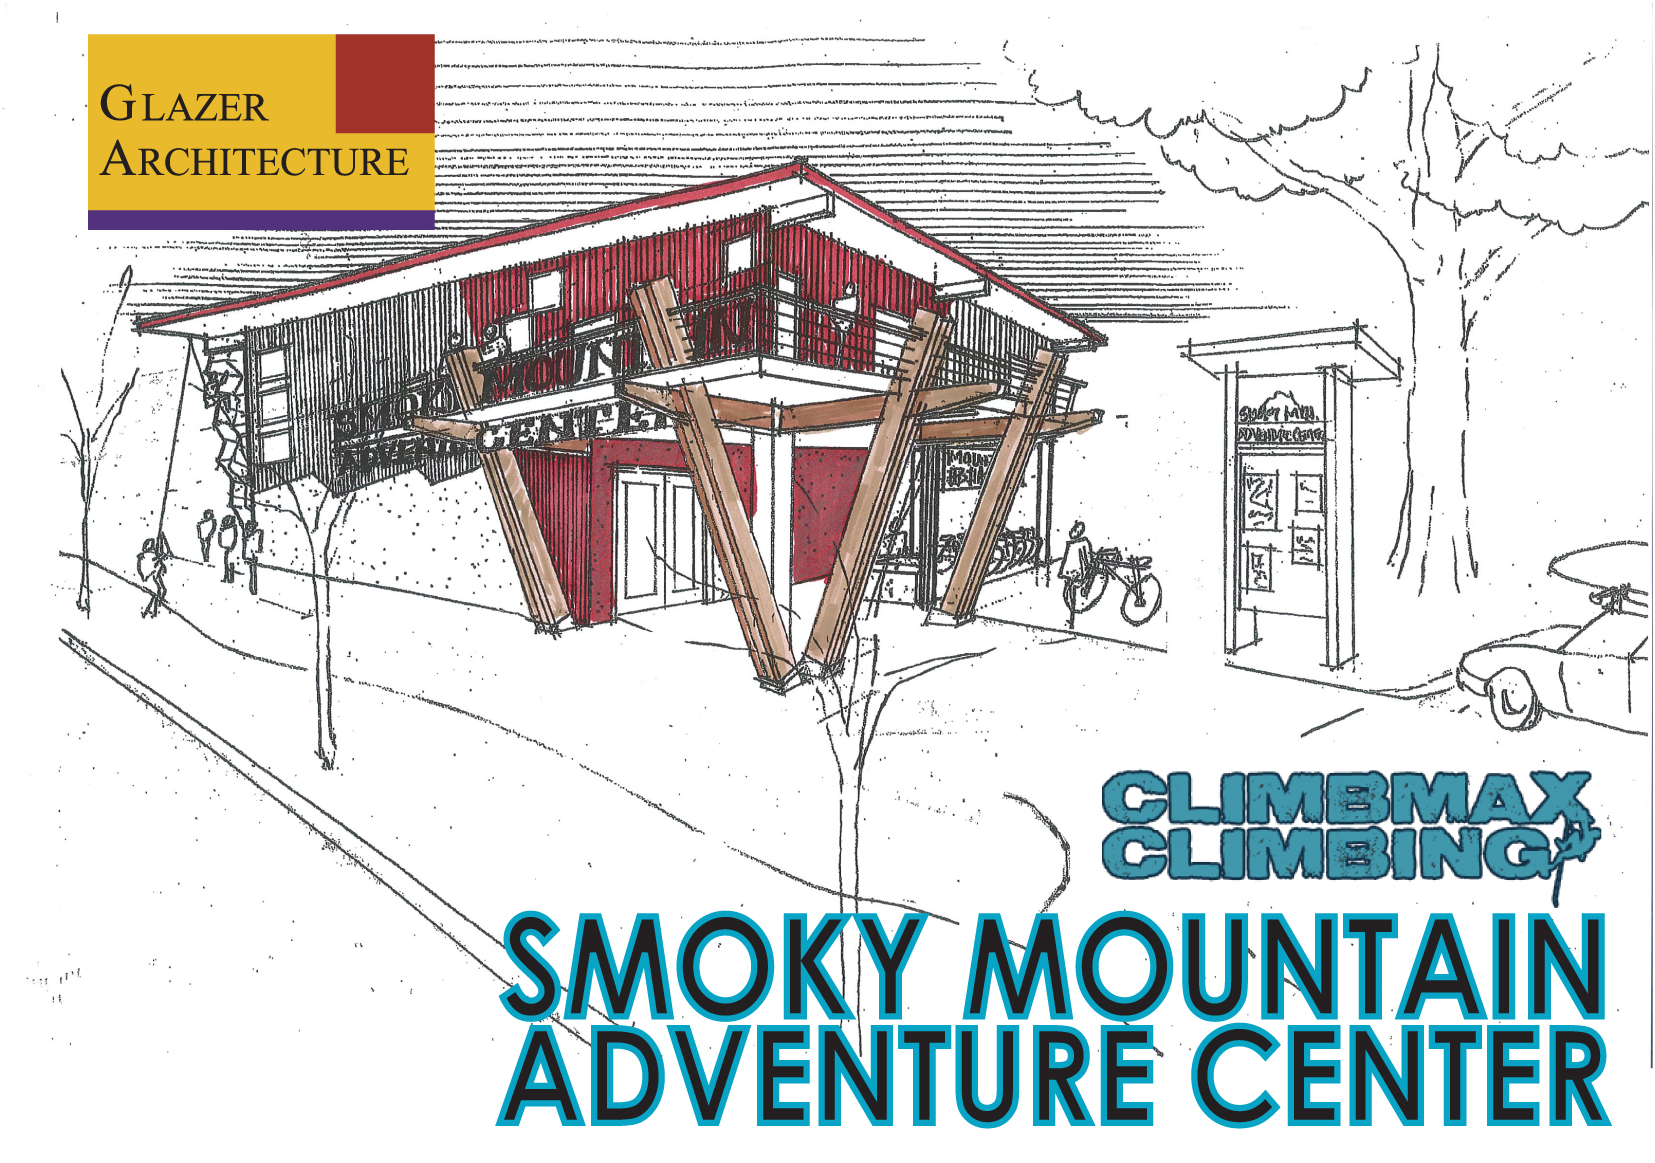 Asheville Pocket Guide: The new Smoky Mountain Adventure Center taking shape